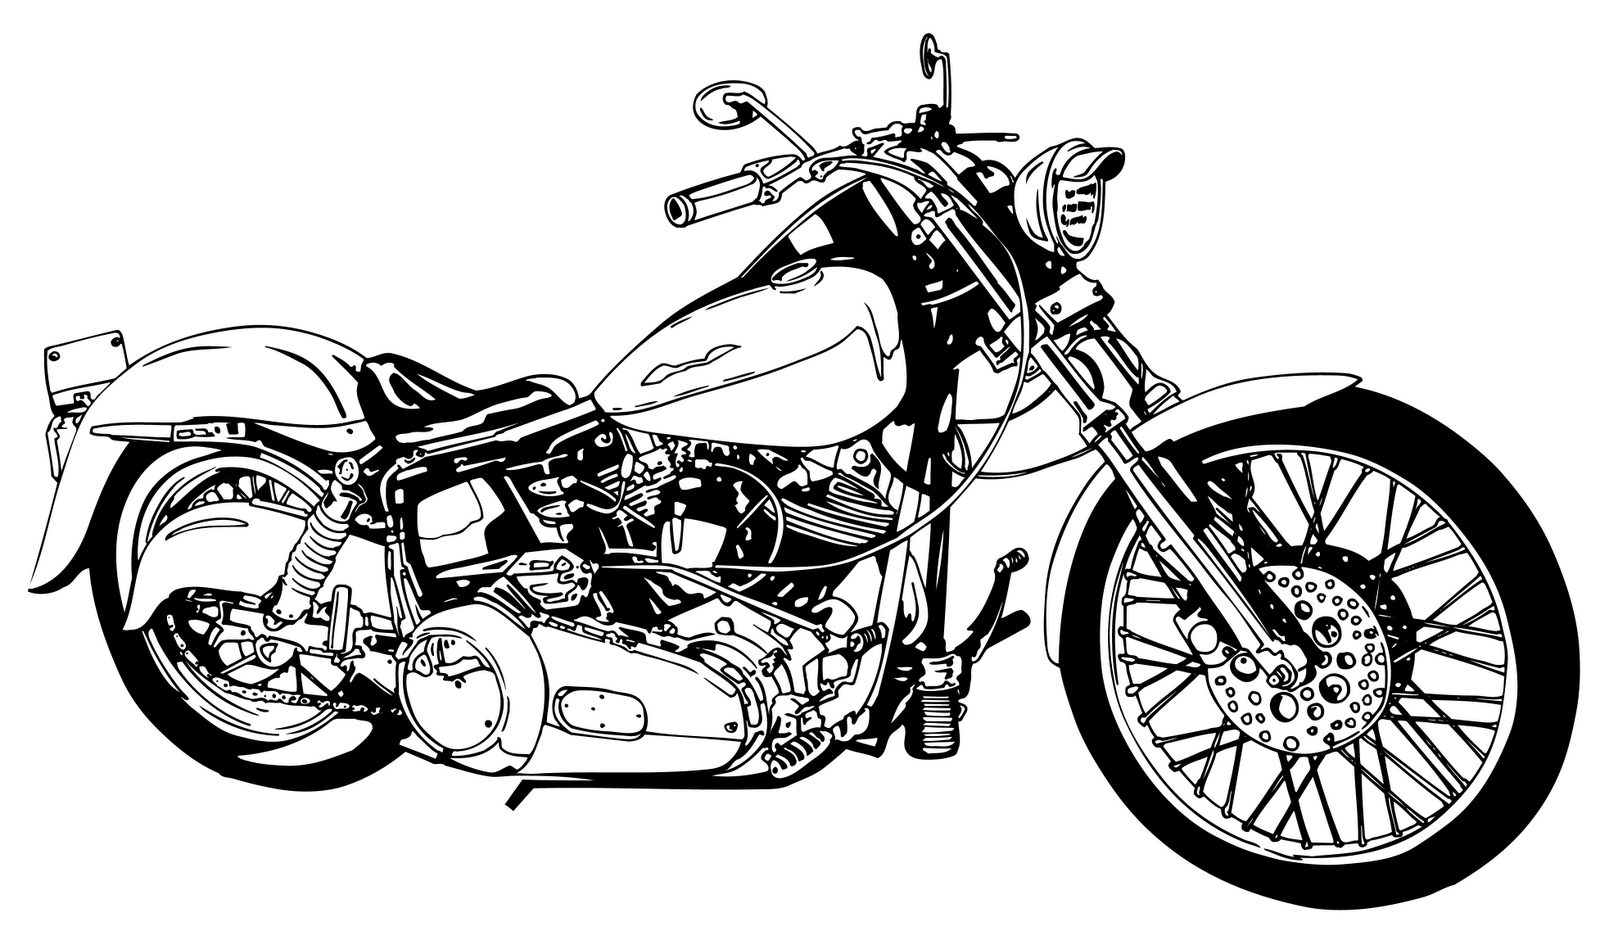 free motorcycle art wallpaper